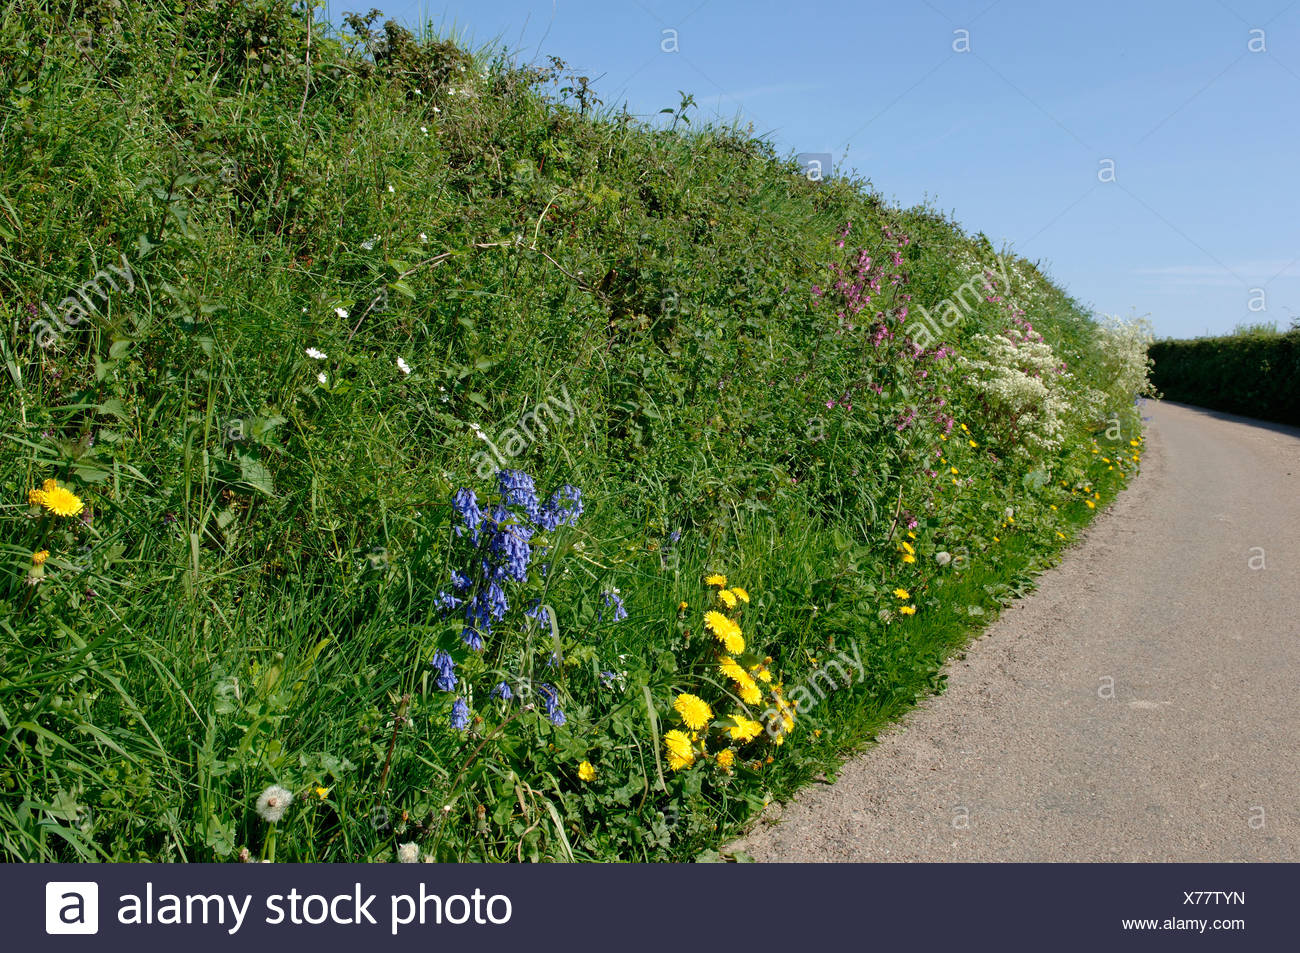 Devon Bank On A Country Road In Spring With Bluebells Campions Other